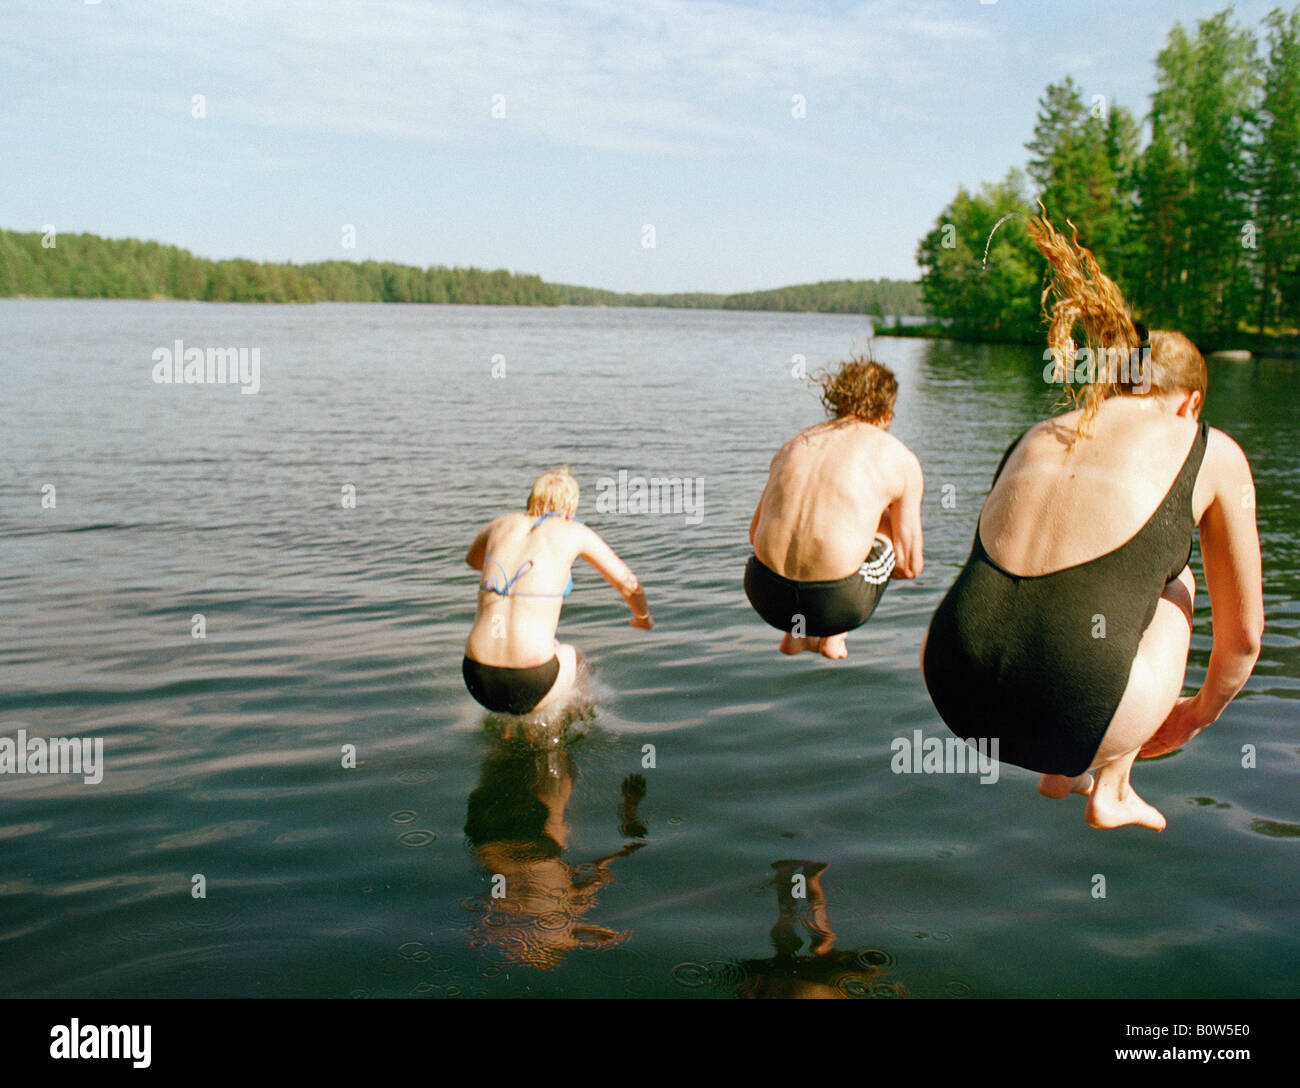 Rear view of two women and one man jumping into a lake Finland - Stock Image